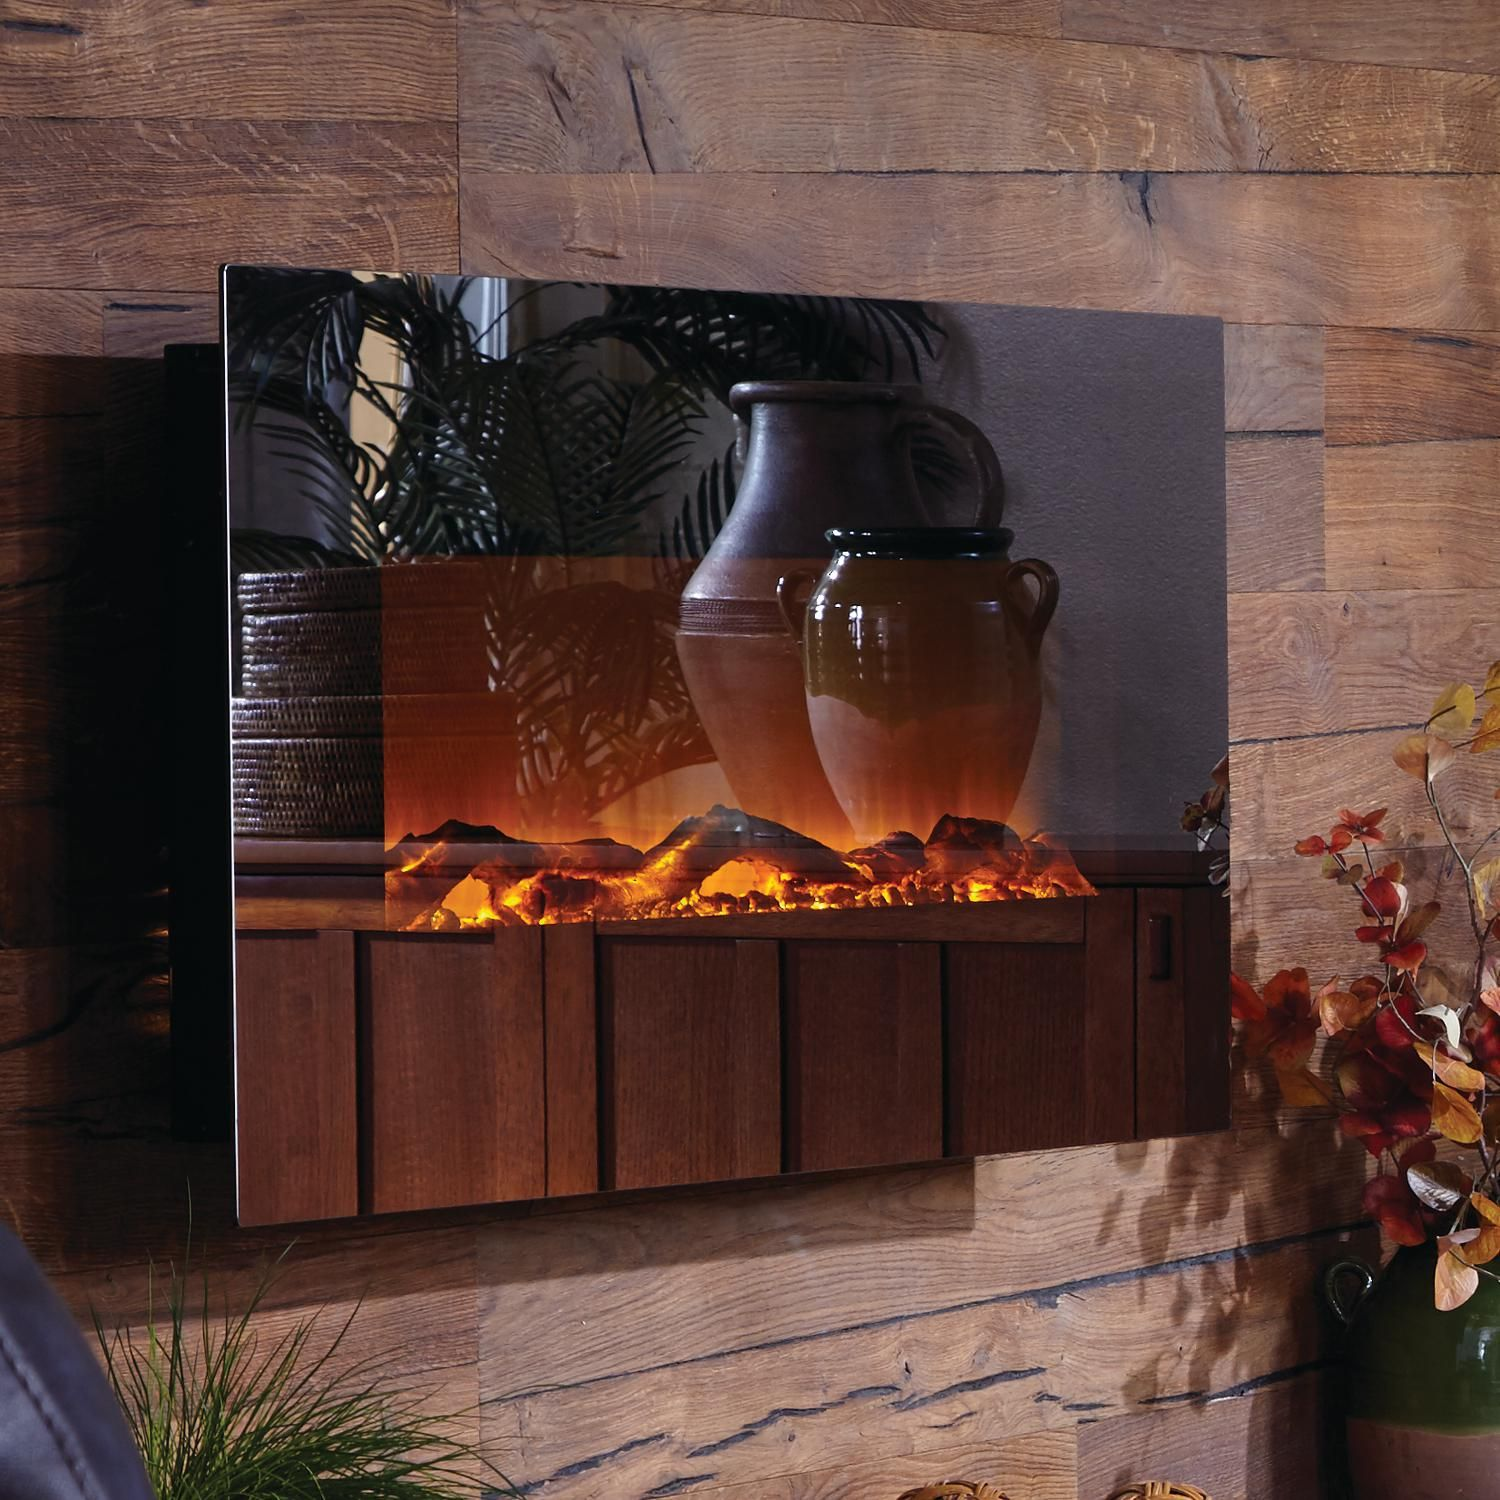 Touchstone Home Products Onyx 50 Inch Wall Mount Electric Fireplace With Mirror Glass Surround 80008 Wall Mount Electric Fireplace Fireplace Mirror Mirror Wall